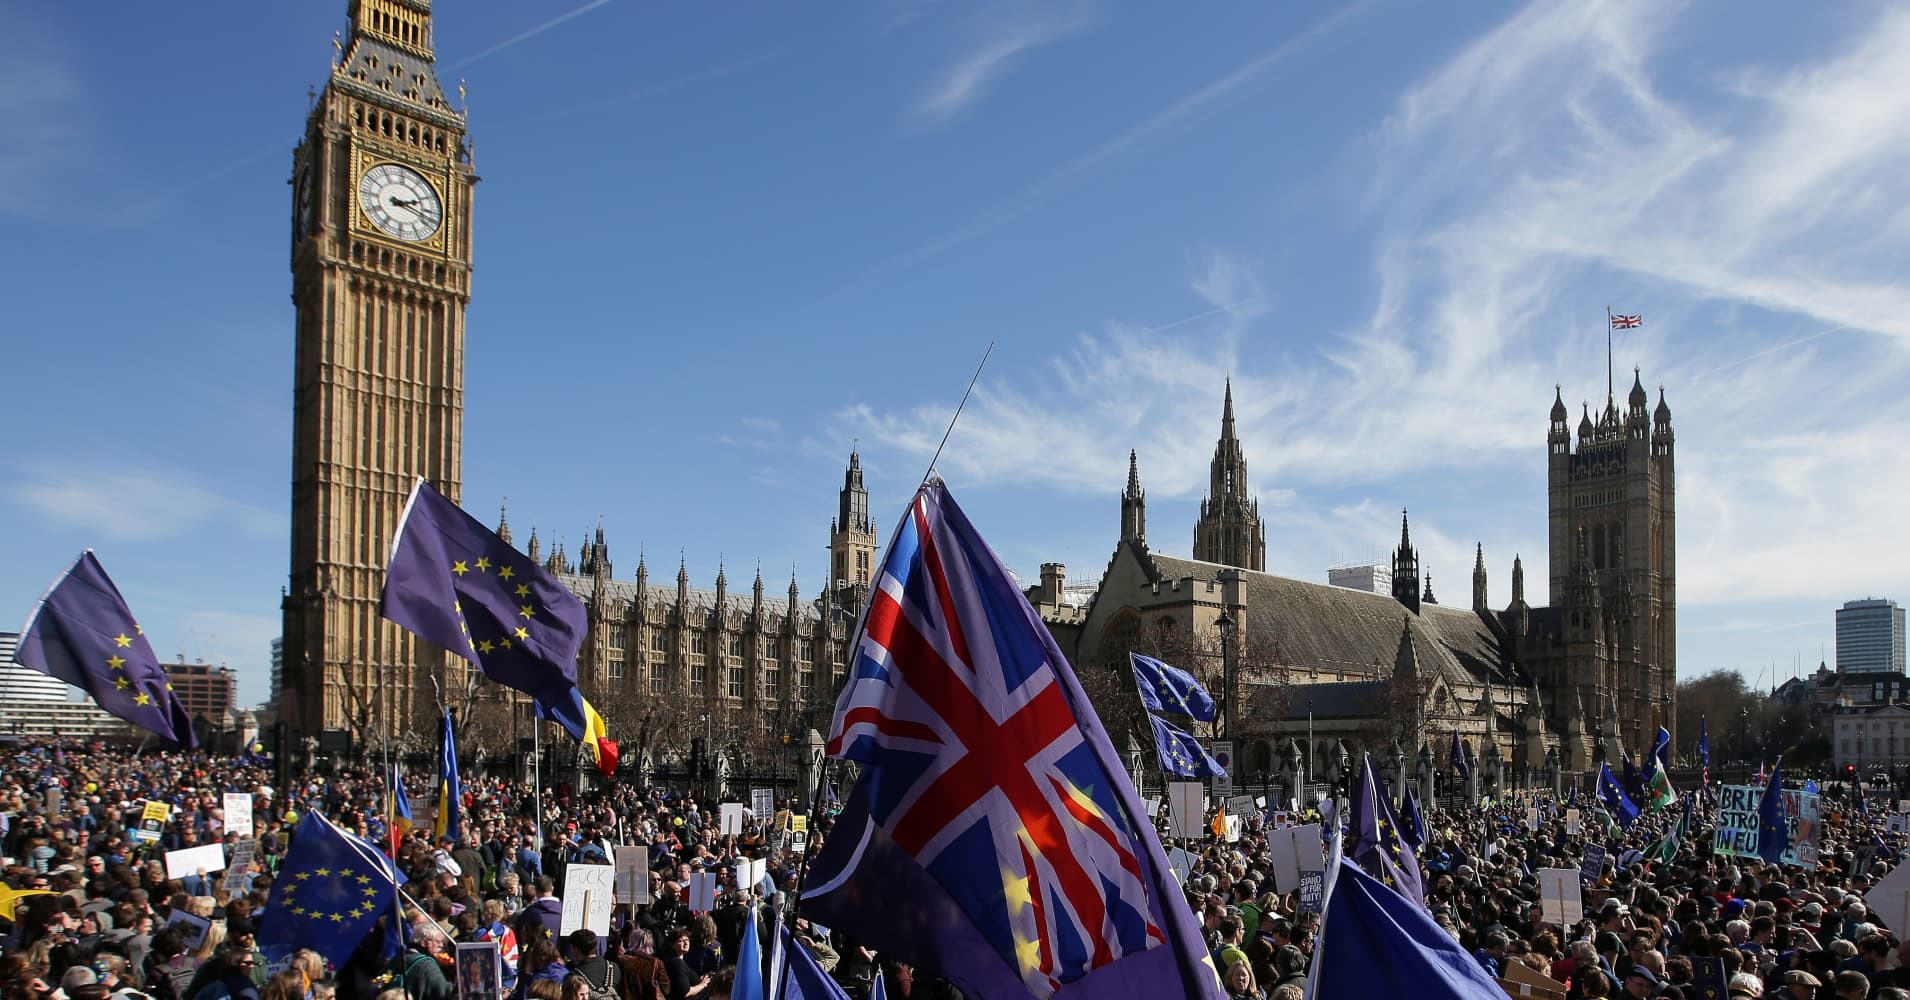 As Brexit remains in limbo, Yale's Stephen Roach says the 'imperfect' EU may not survive